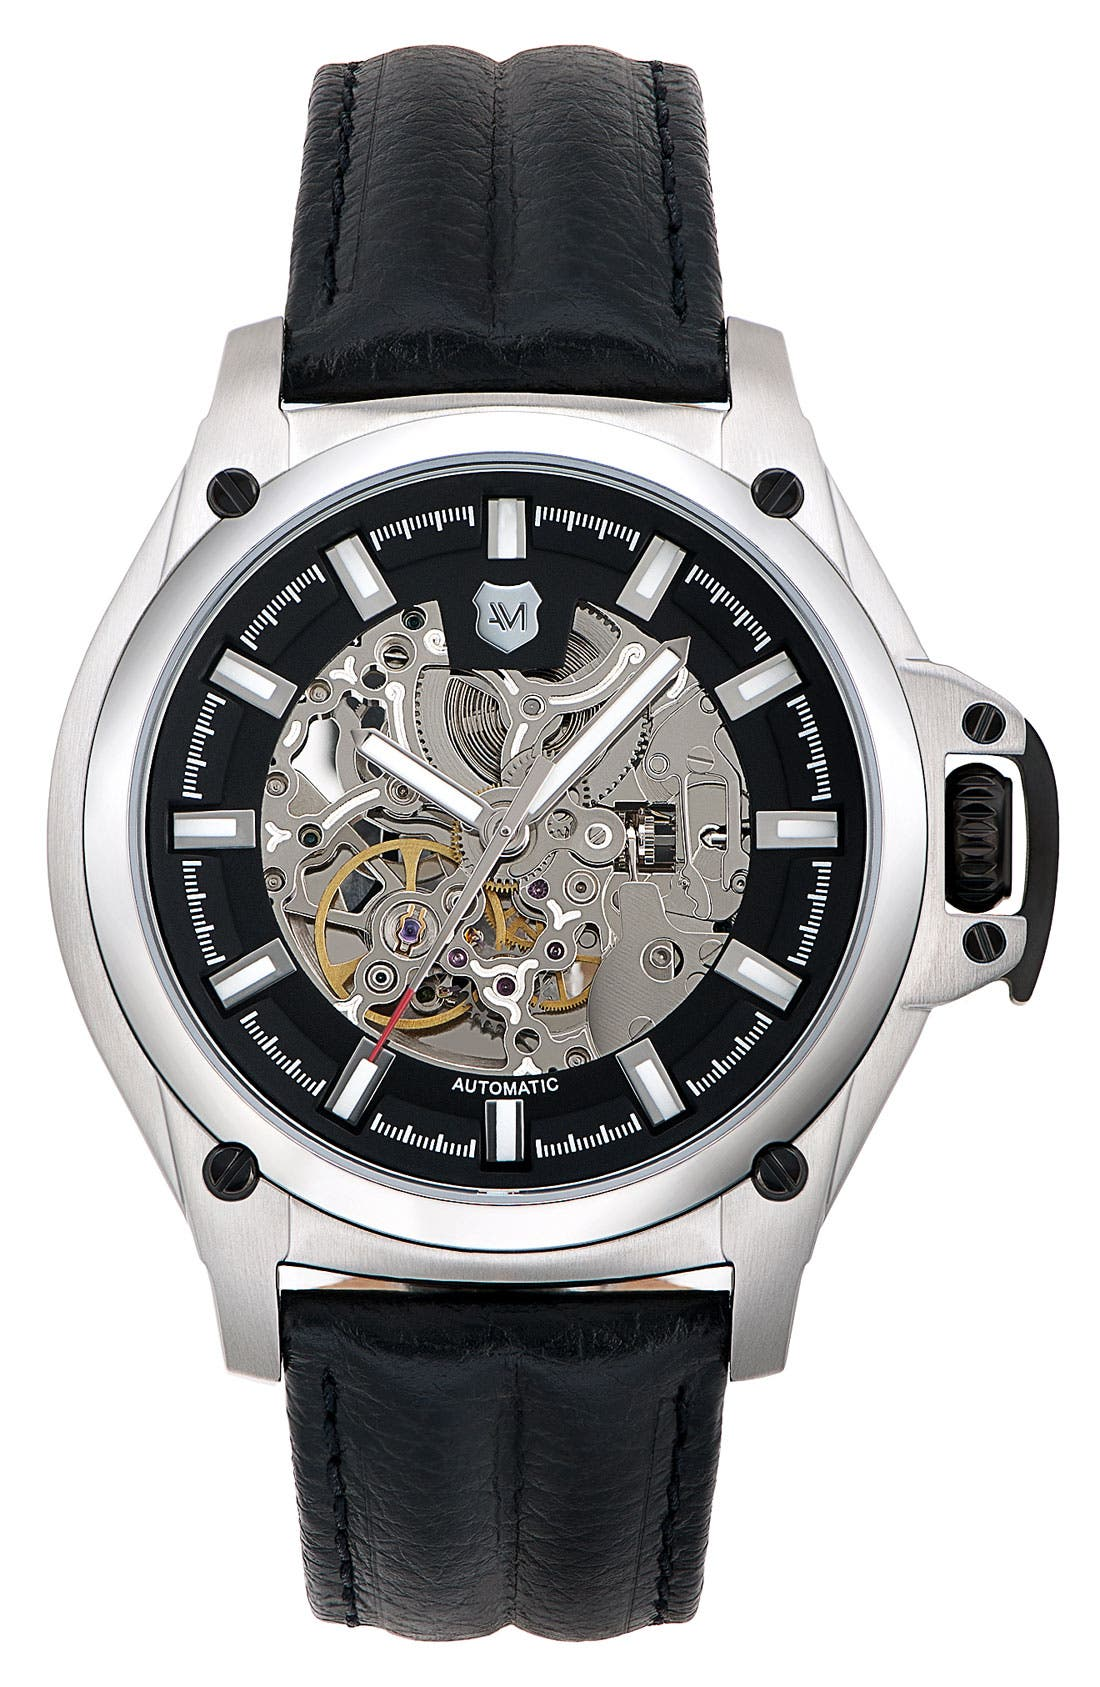 Alternate Image 1 Selected - Andrew Marc Watches 'G-III Pro' Automatic Leather Strap Watch